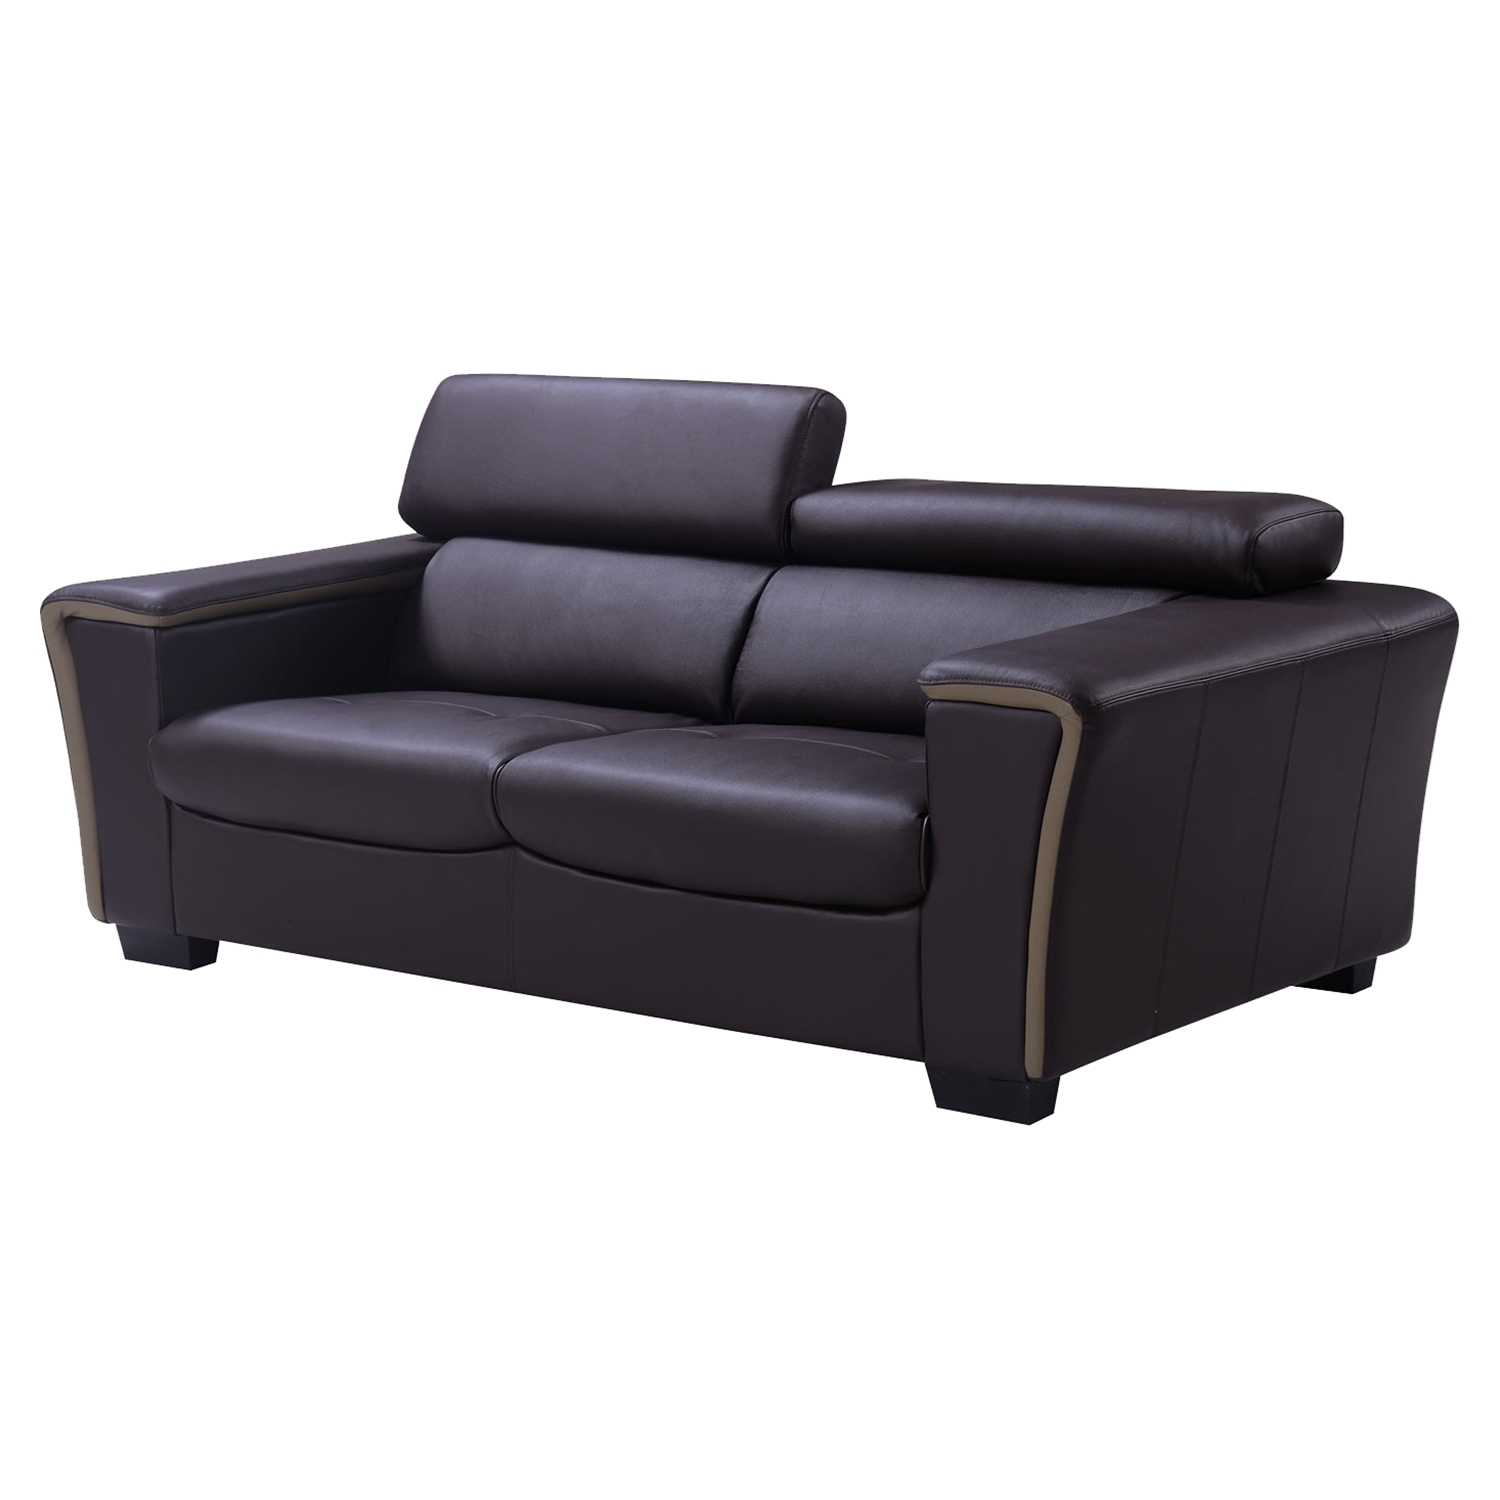 Mikayla Sofa with Headrest Function - Chocolate/Dark Cappuccino